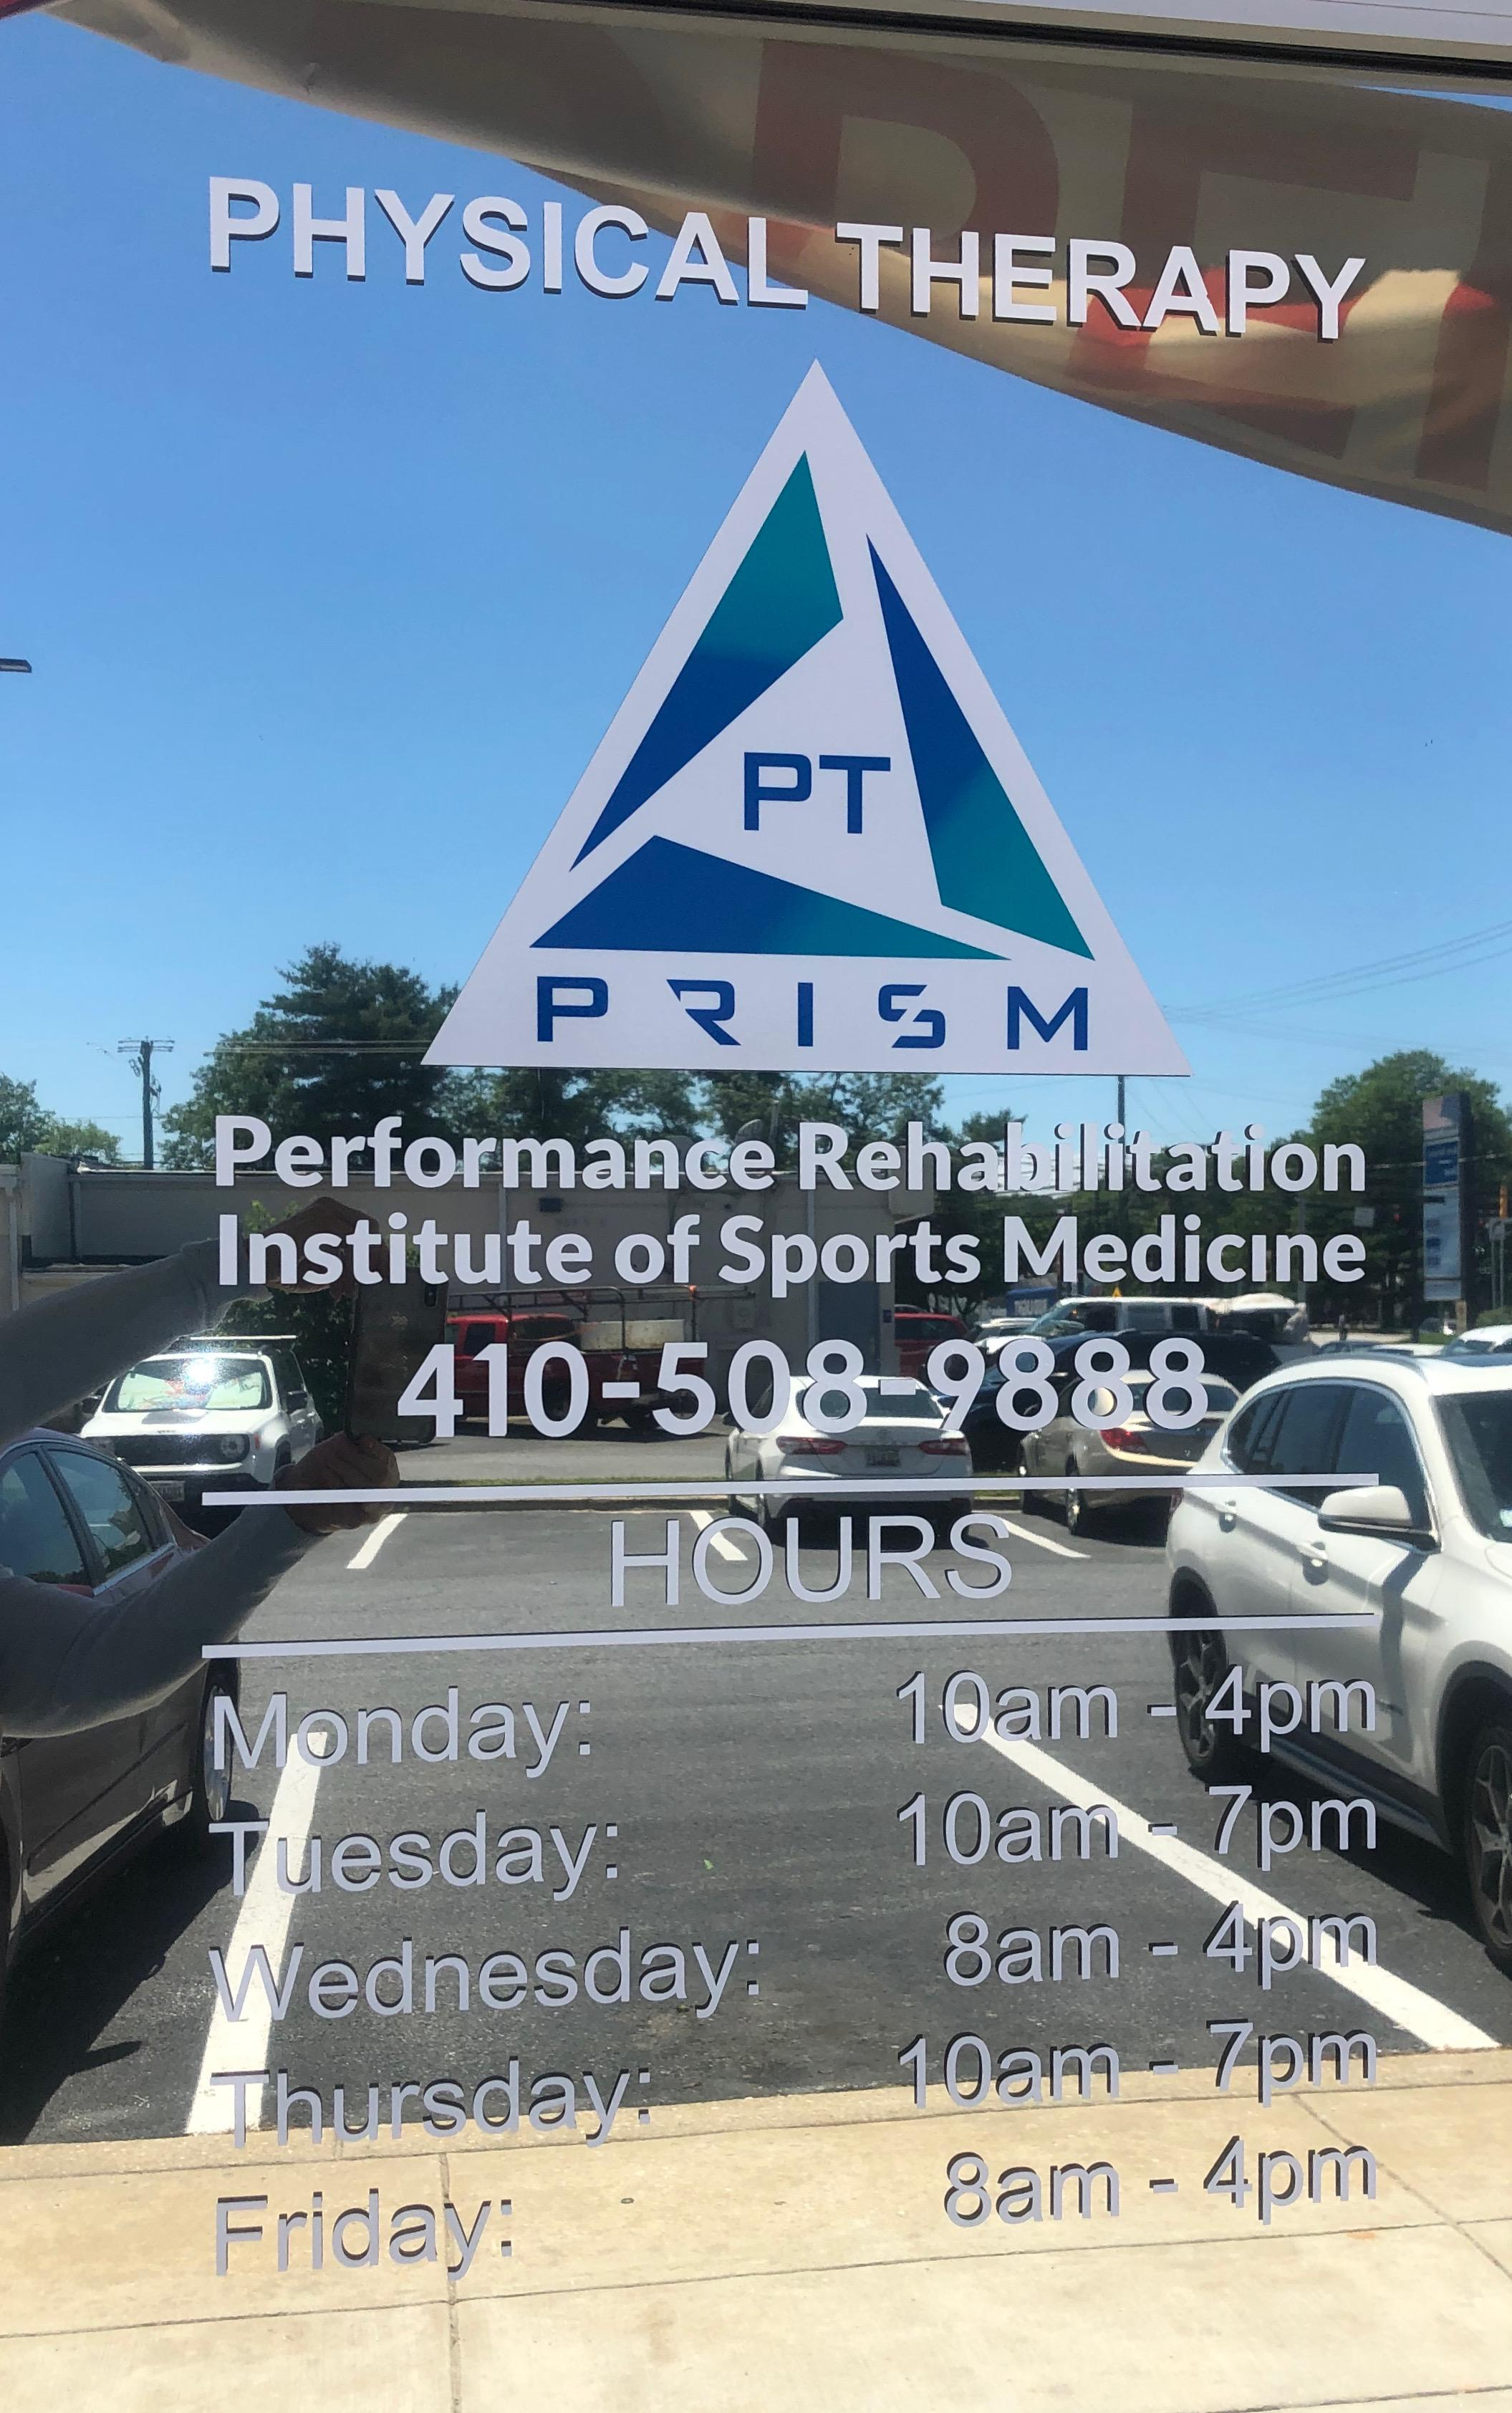 PRISM Physical Therapy